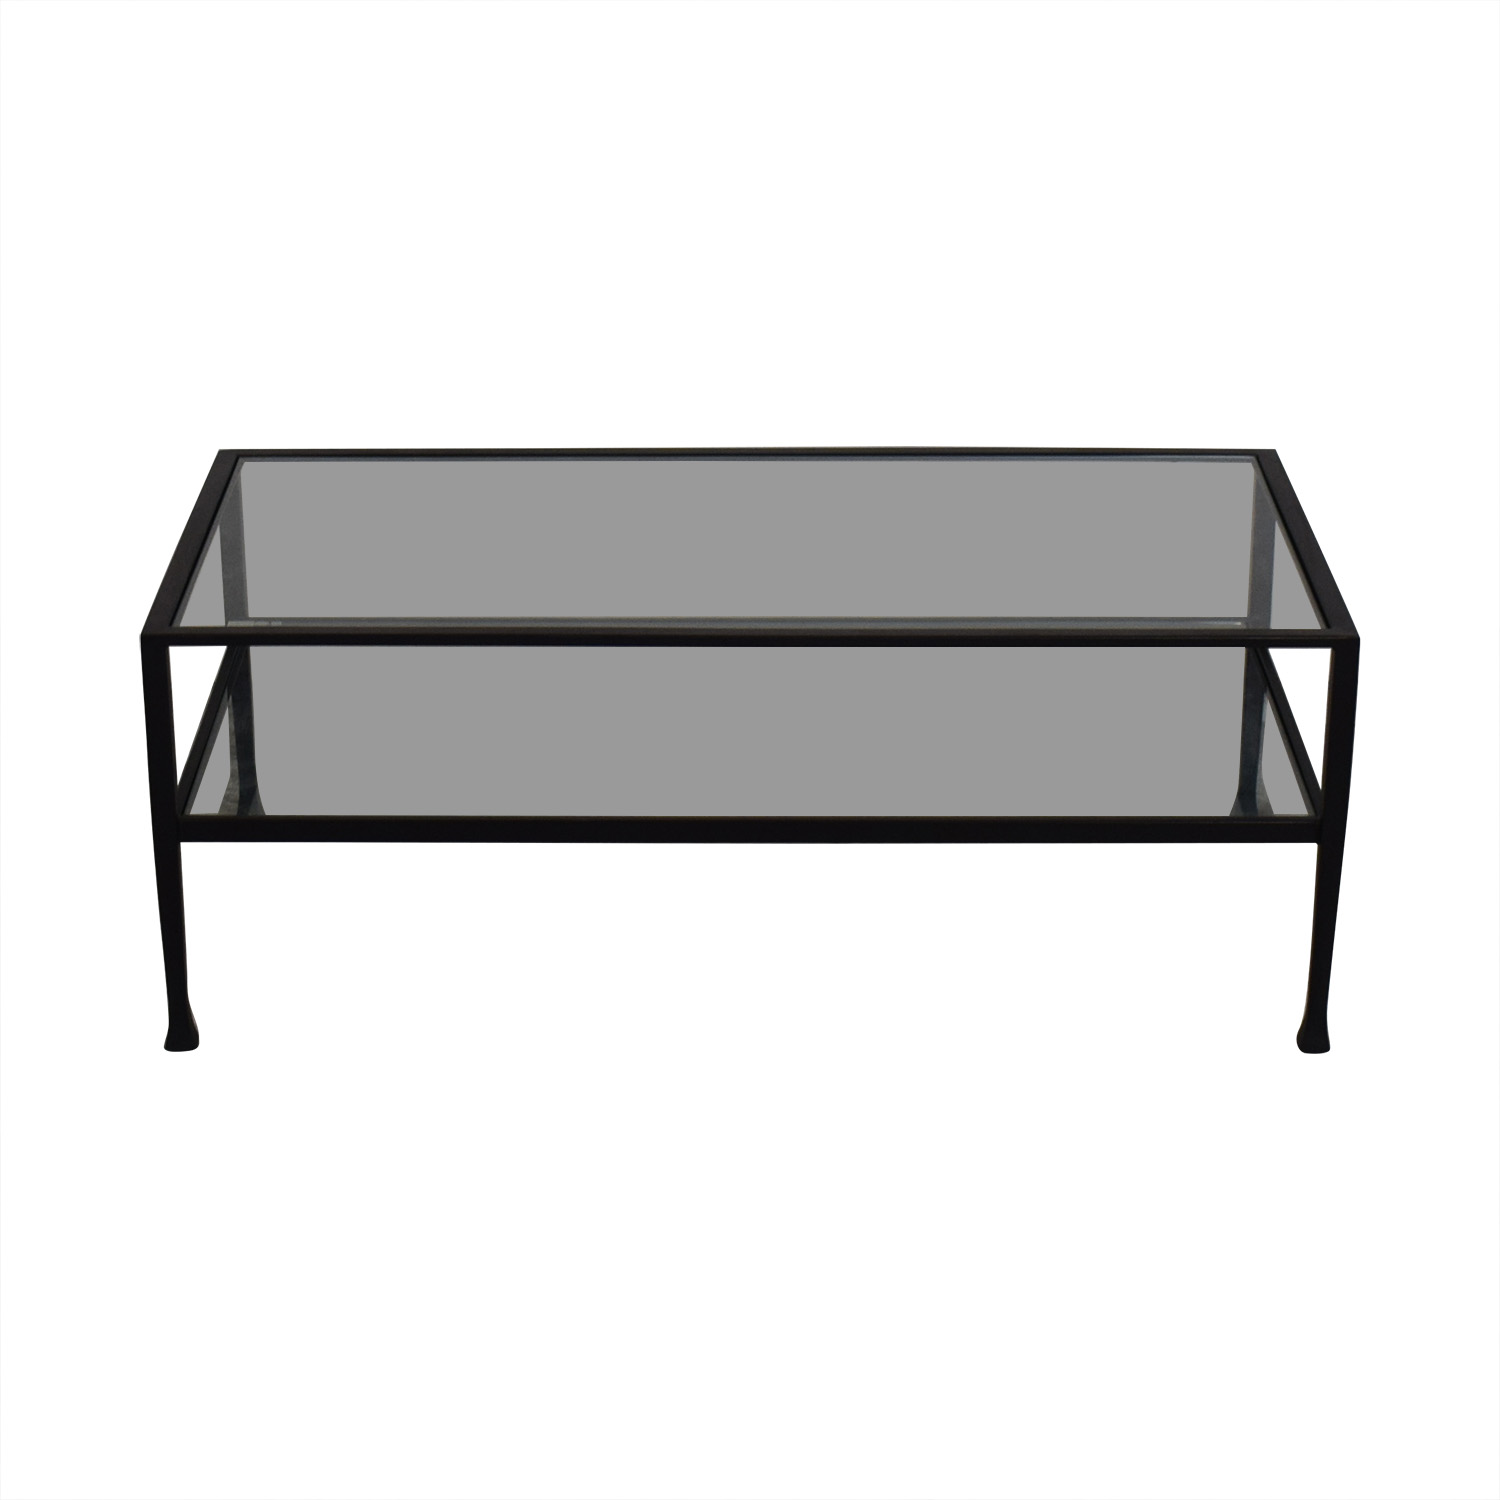 48767e004a 42% OFF - Pottery Barn Pottery Barn Glass and Black Coffee Table ...